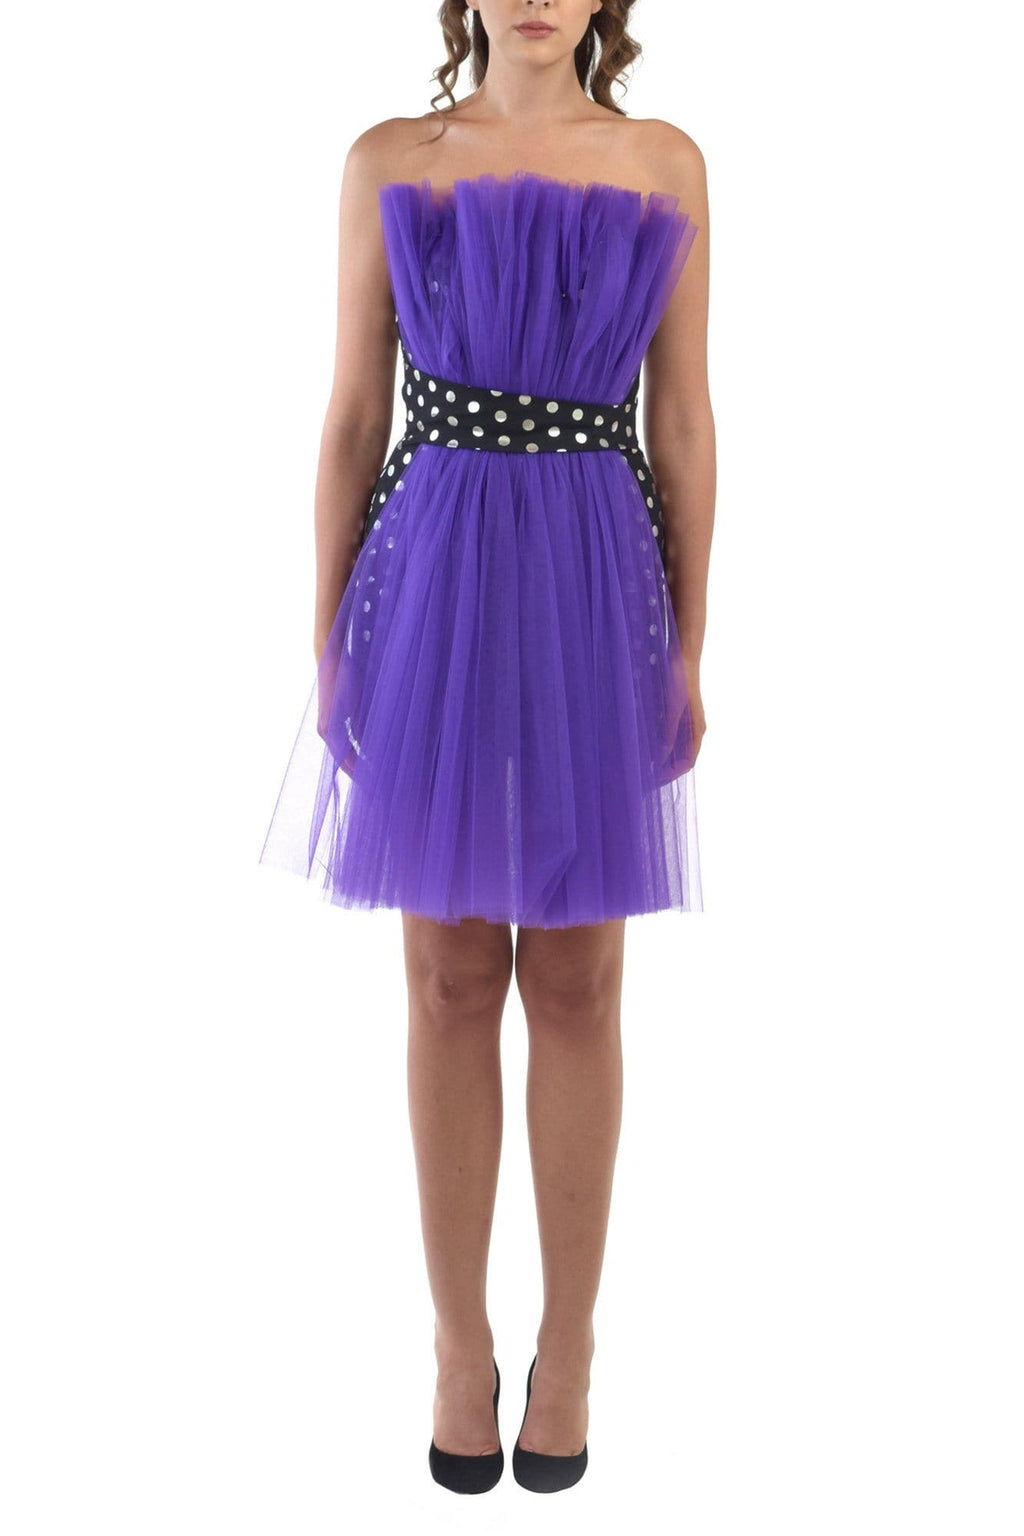 Mini Dress With Purple Tulle Detailing - BYTRIBUTE